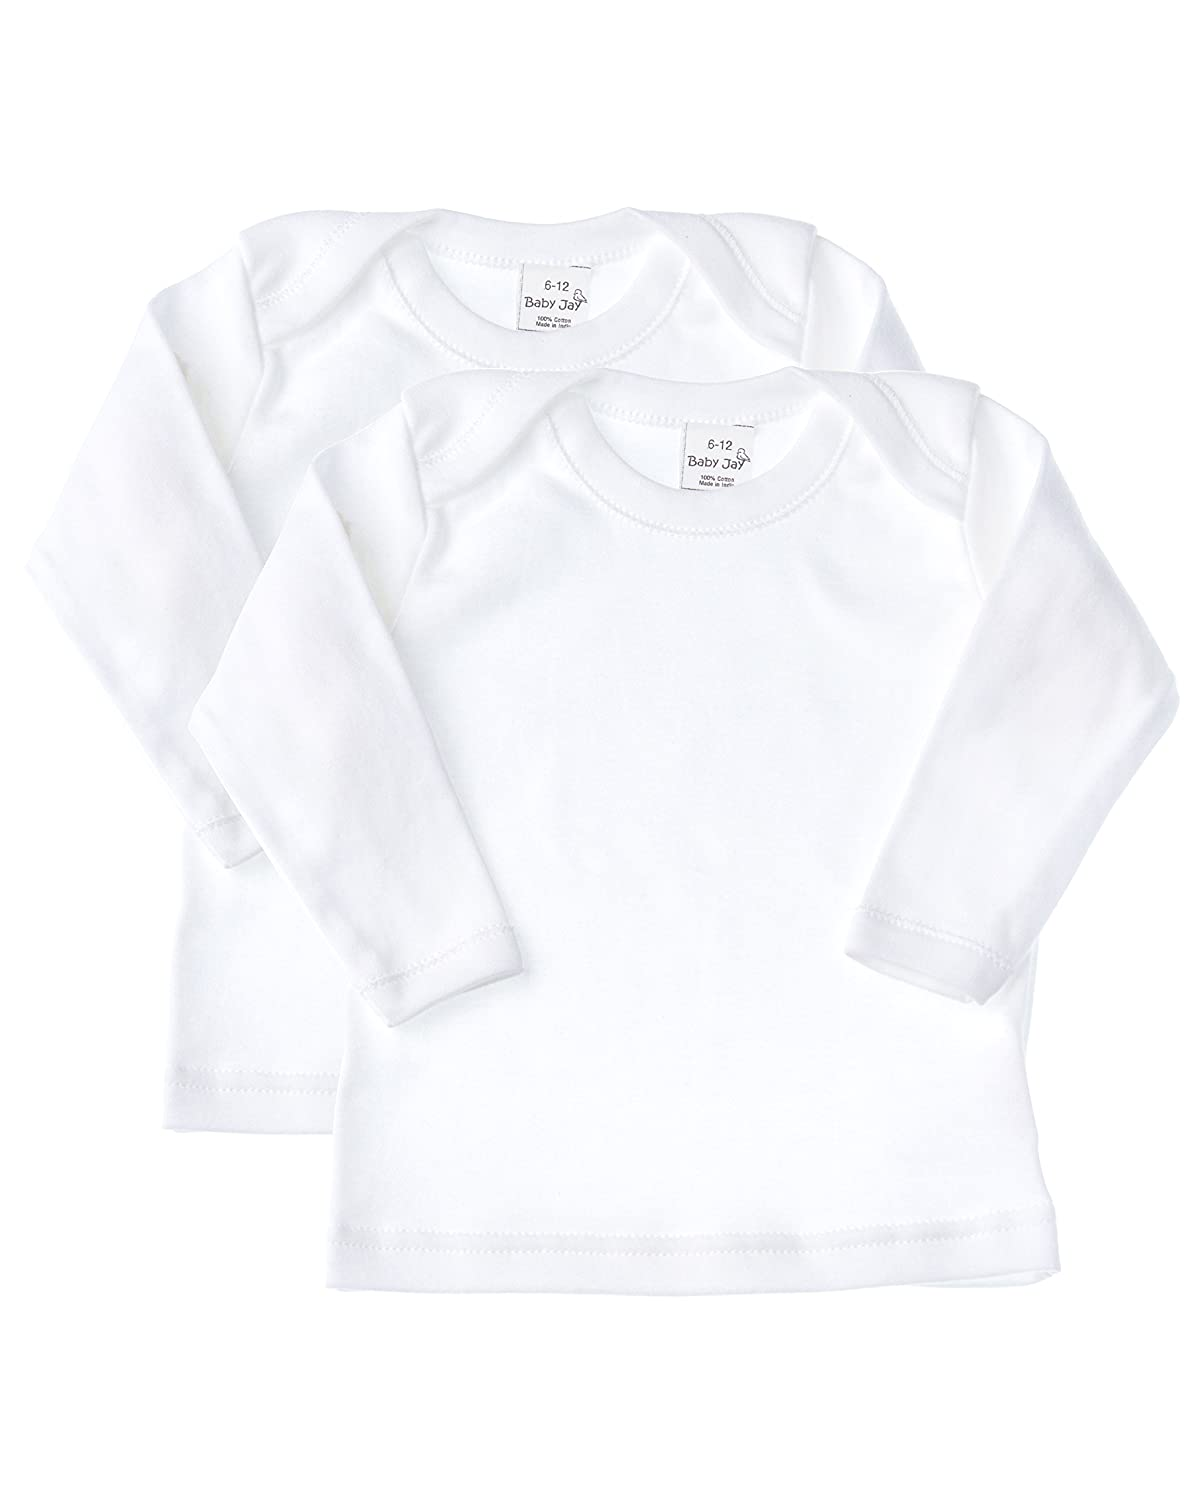 Baby Jay Long Sleeve Undershirt 2 Pack -White Cotton Baby T Shirt, Lap Shoulder WTLE-2PK